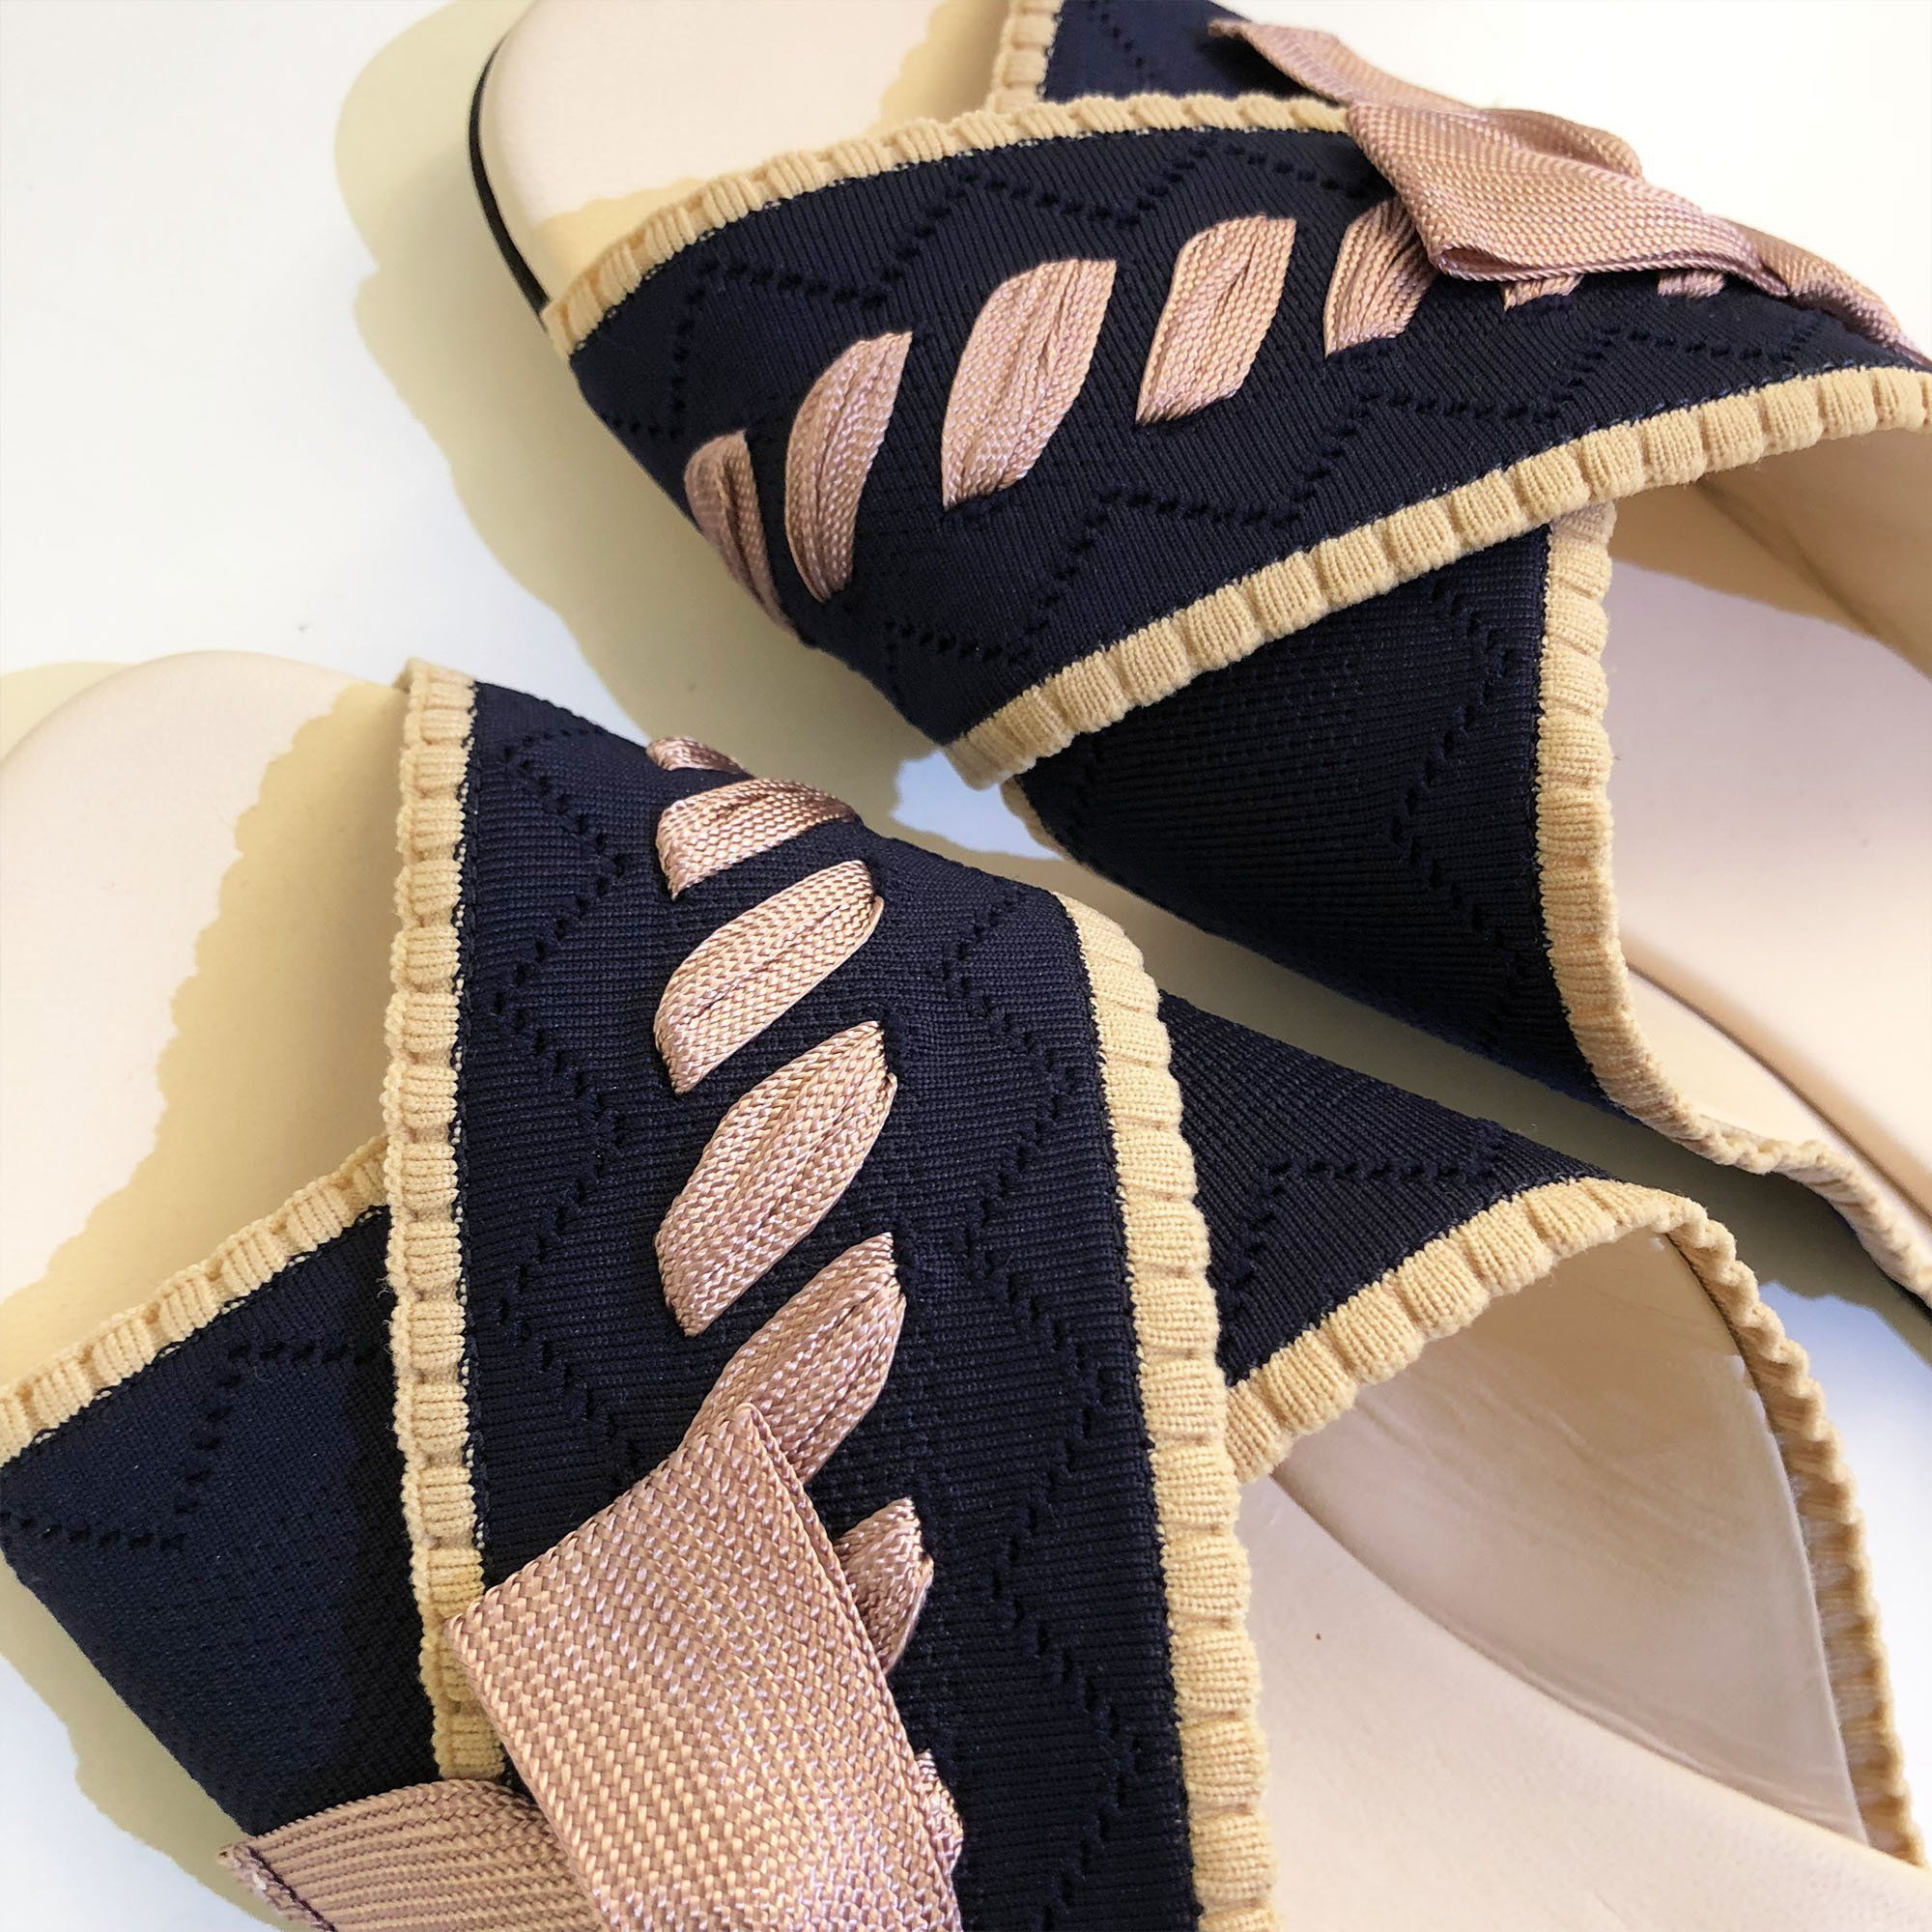 Fendi Knit Navy Blue Criss Cross Slides